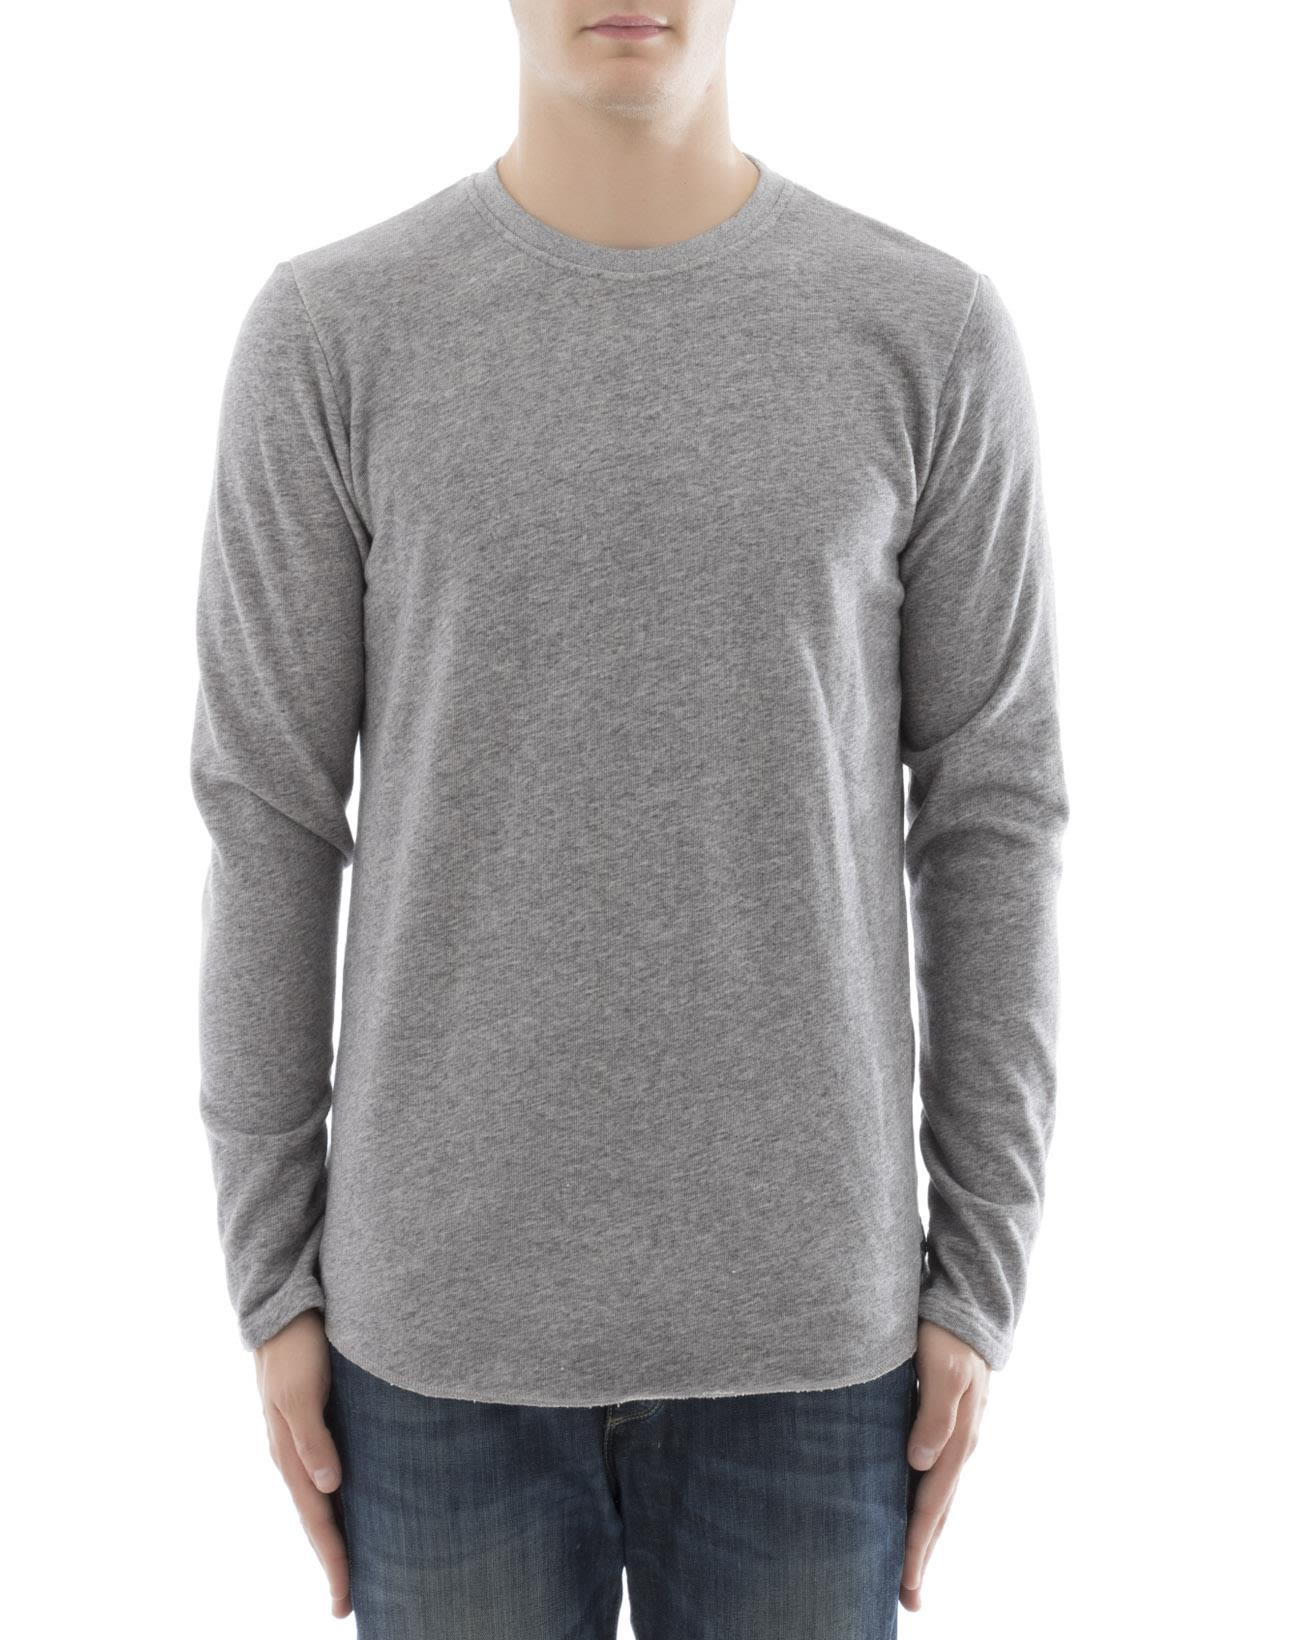 Edwin - Grey Cotton Sweater - Grey, Men's Sweaters | Italist